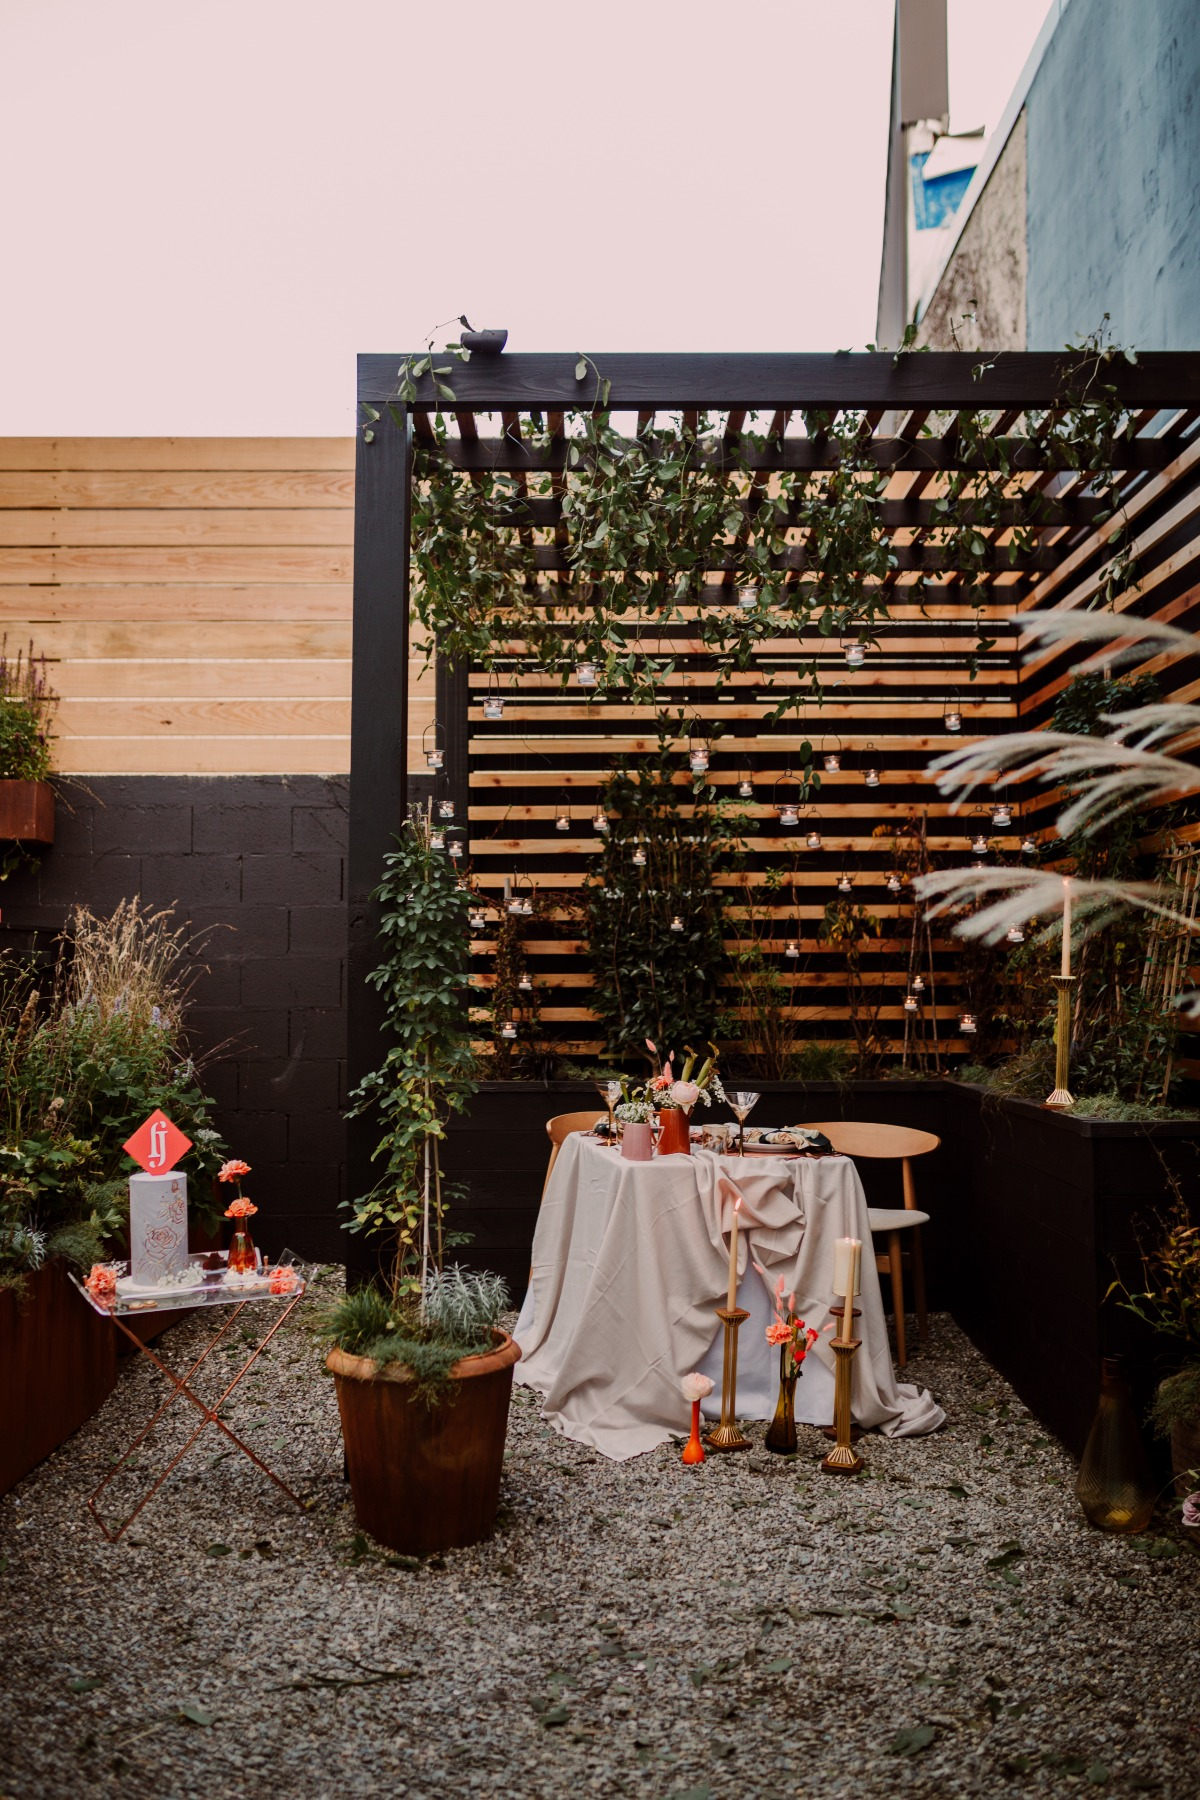 Backyard wedding design